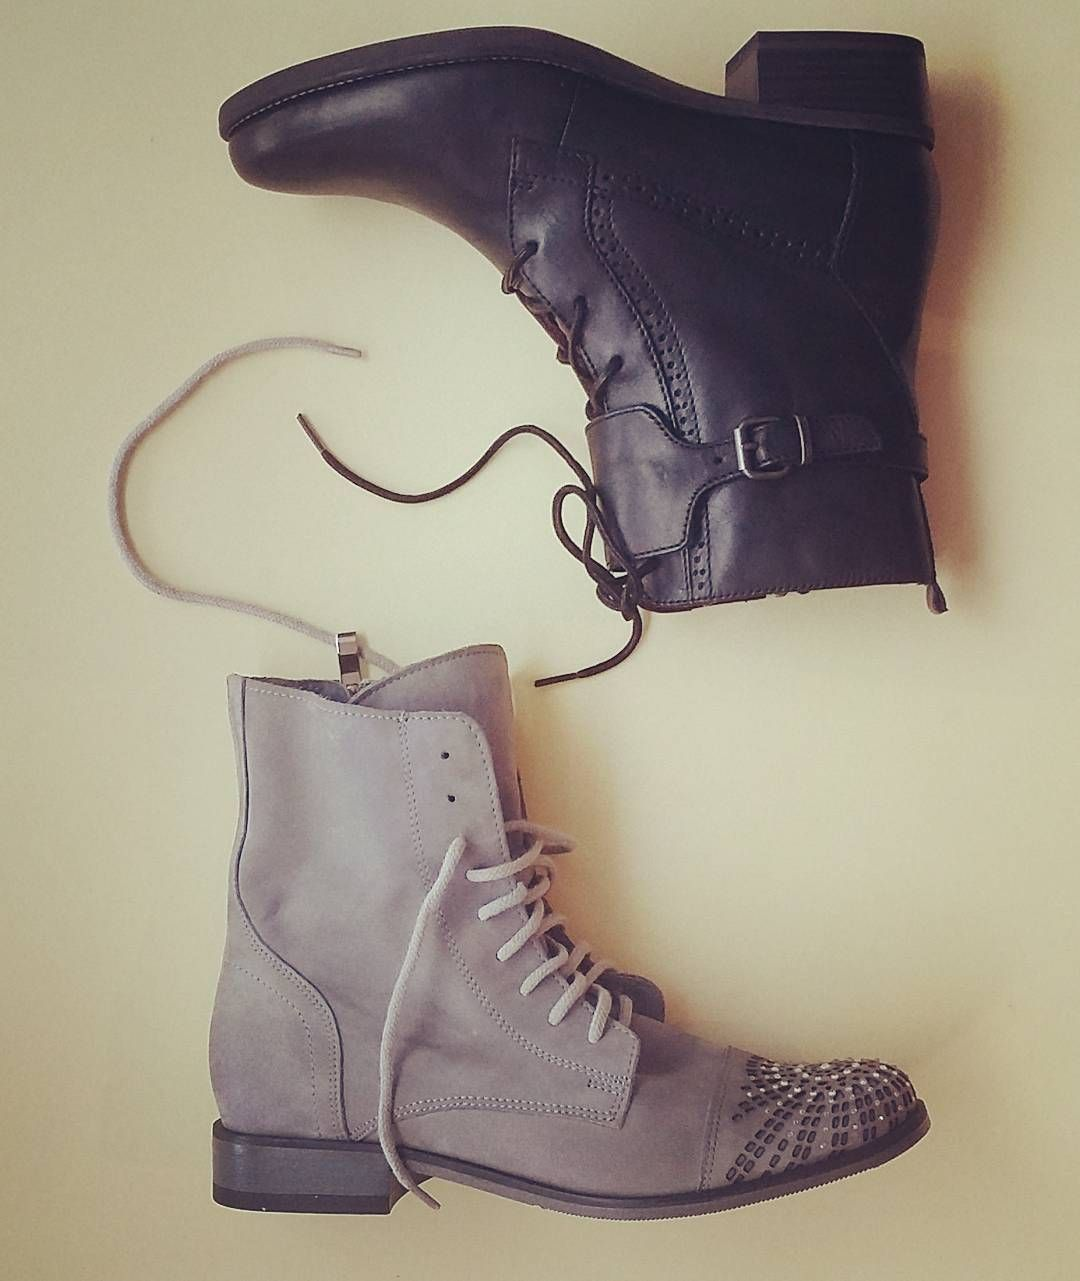 Trzewiki Tamaris Newcollection Autum2016 2017 Exquisite Leather Greyshoes Blackshoes Www Alebuty Com Pl Goodlookin Grey Shoes Combat Boots Black Shoes